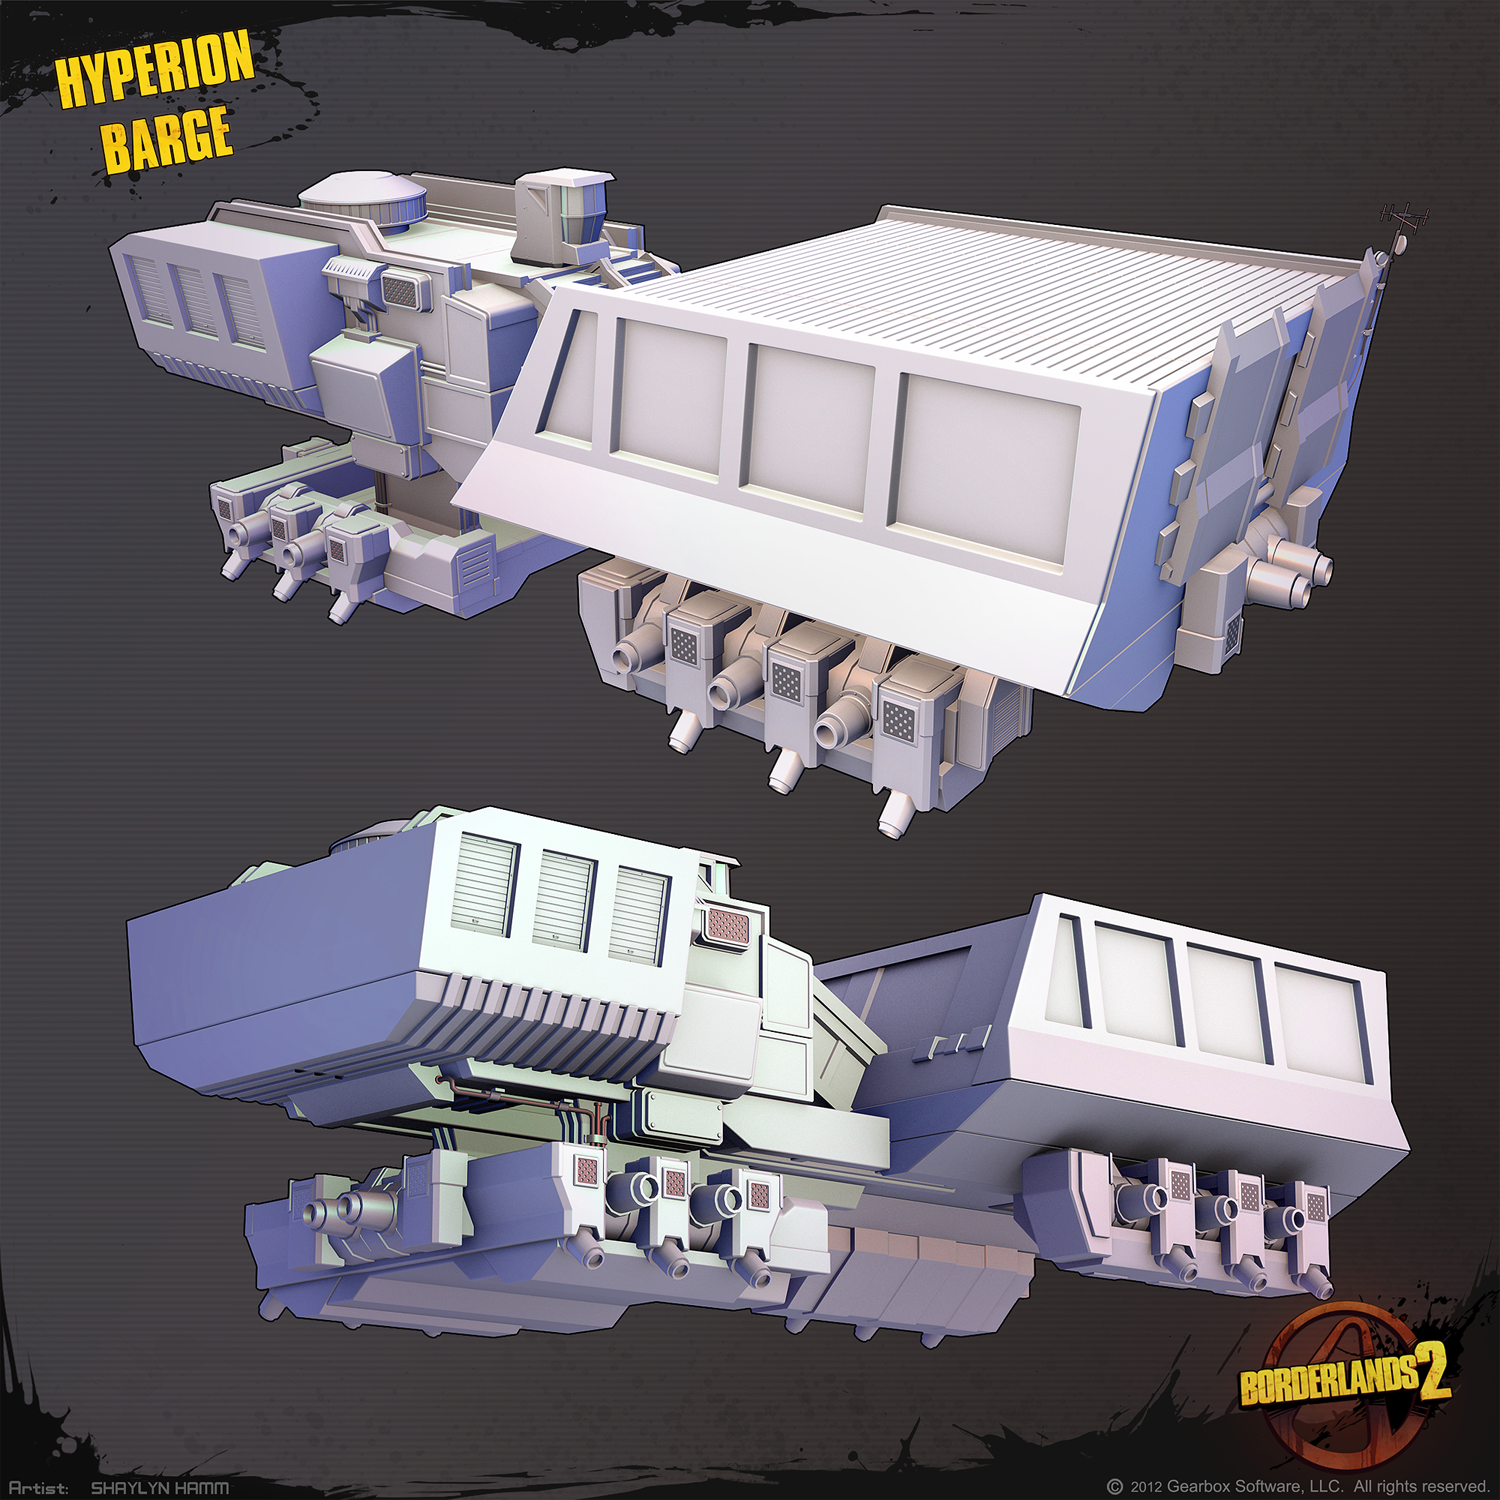 hyperion_barge_small2_by_chemicalalia-d5l6y7x.png